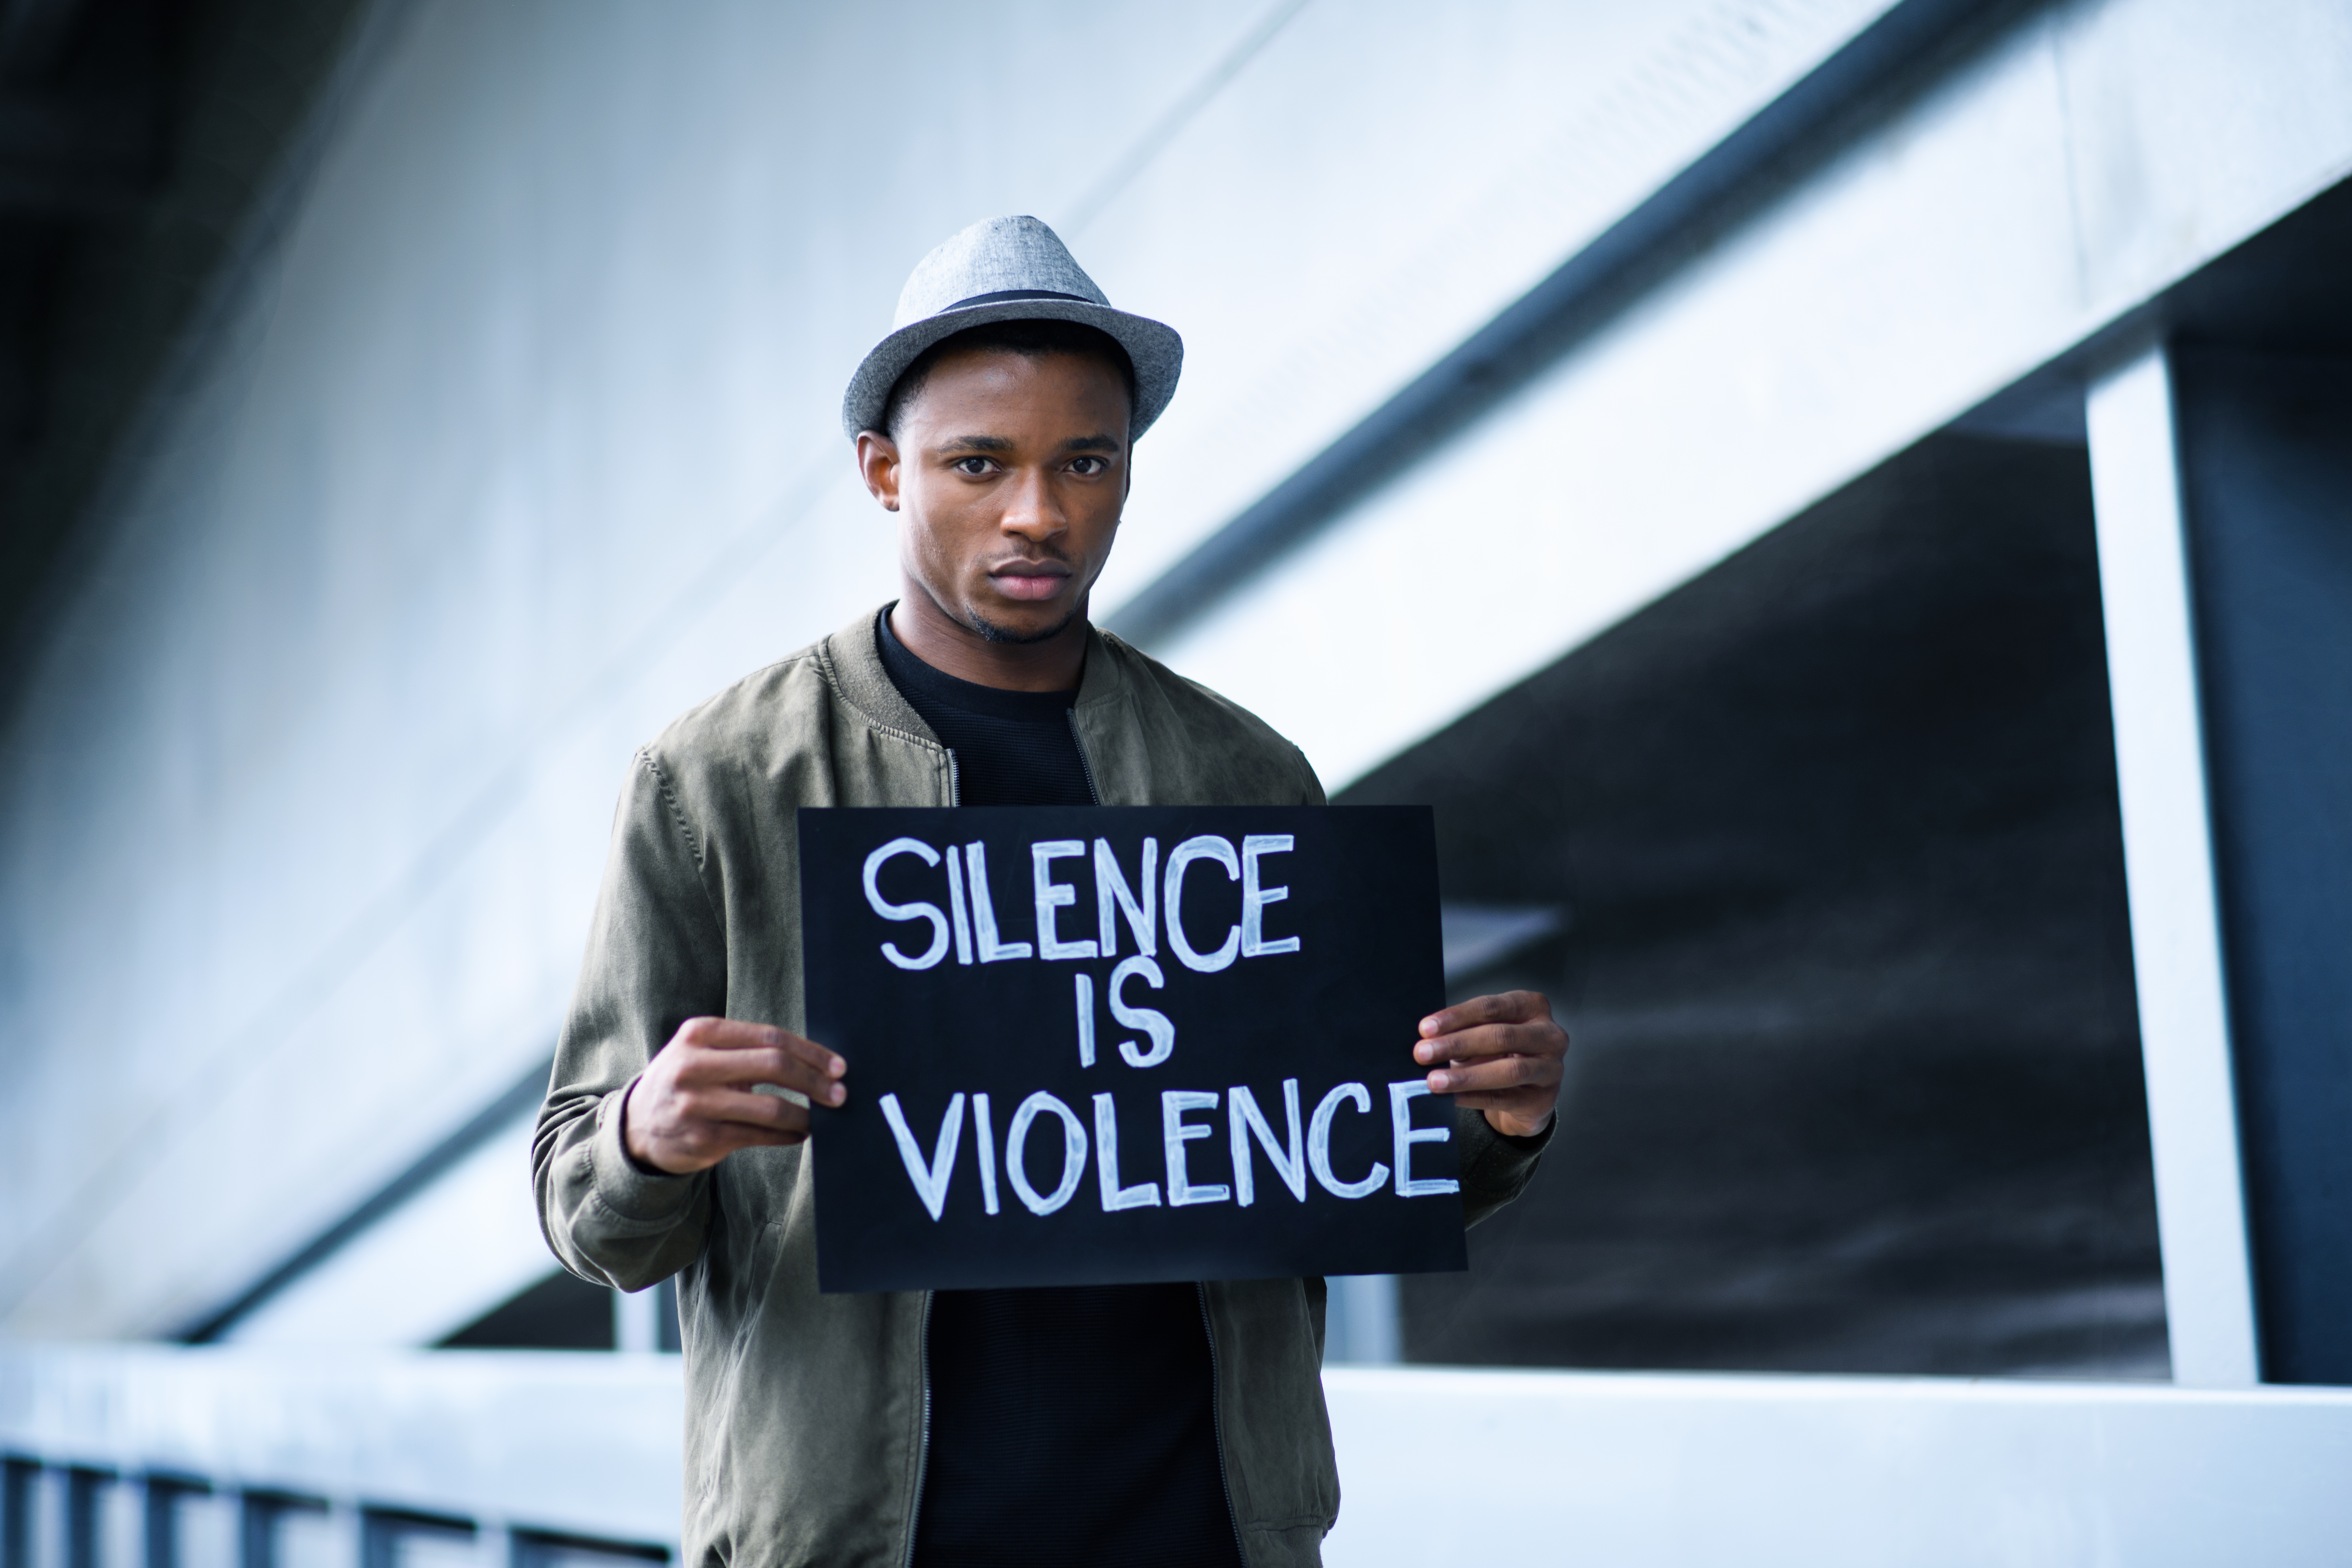 man-with-silence-is-violence-sign-standing-outdoor-4DXN7YQ